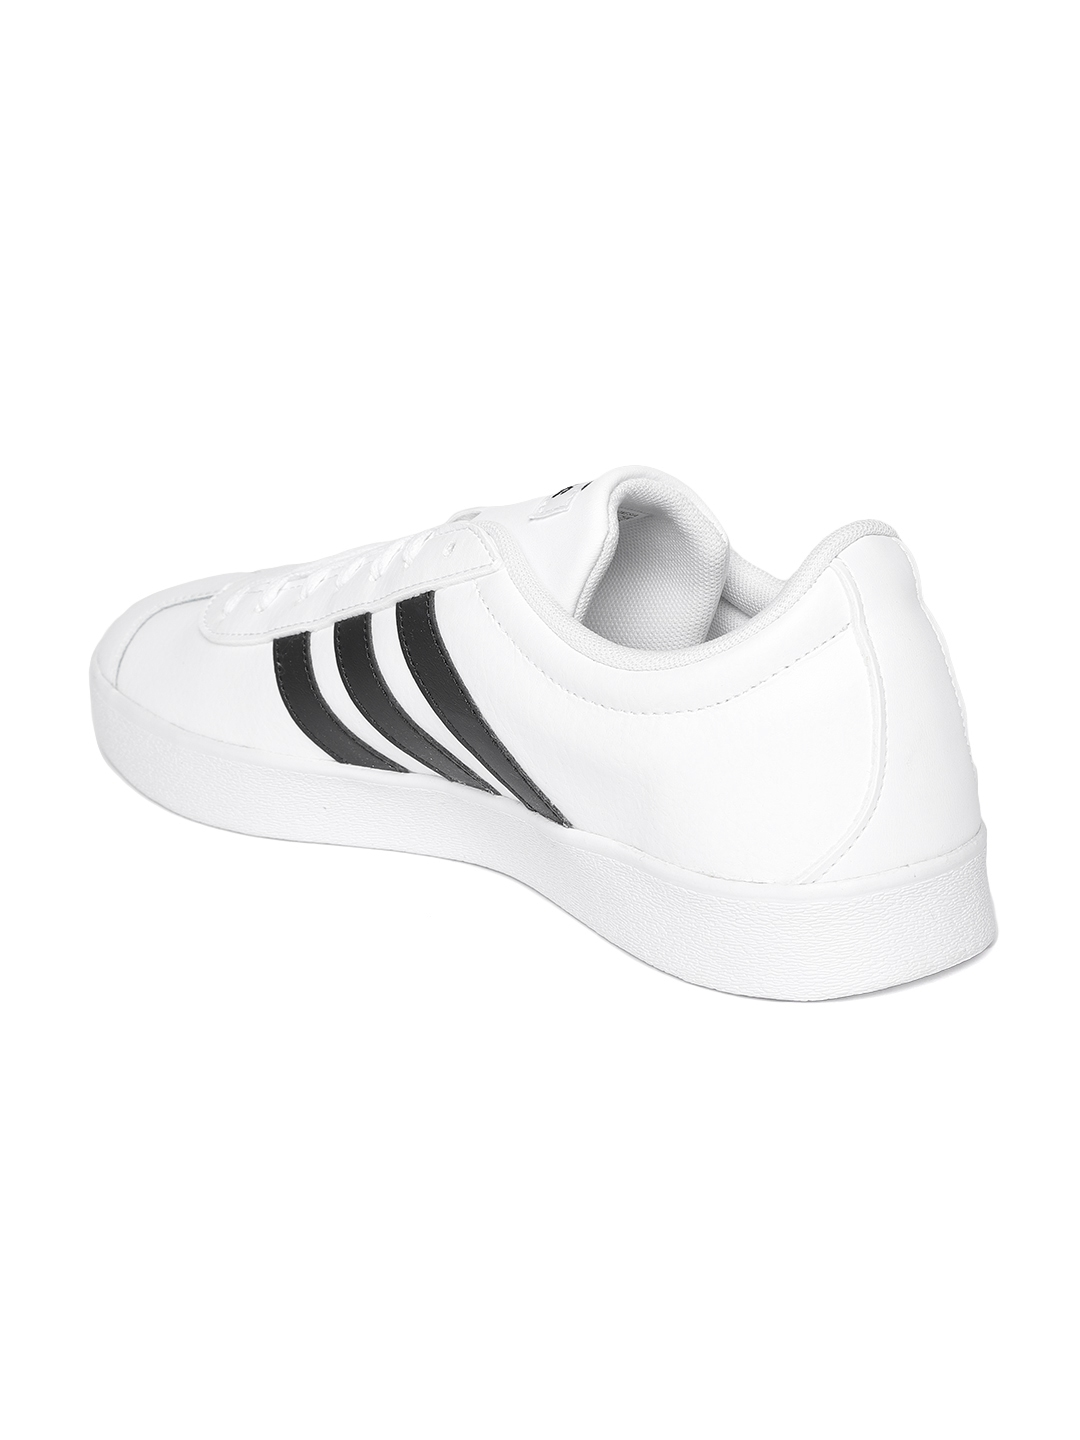 383ad6febd3d Buy ADIDAS Originals Men White VL Court 2.0 Leather Skateboarding ...